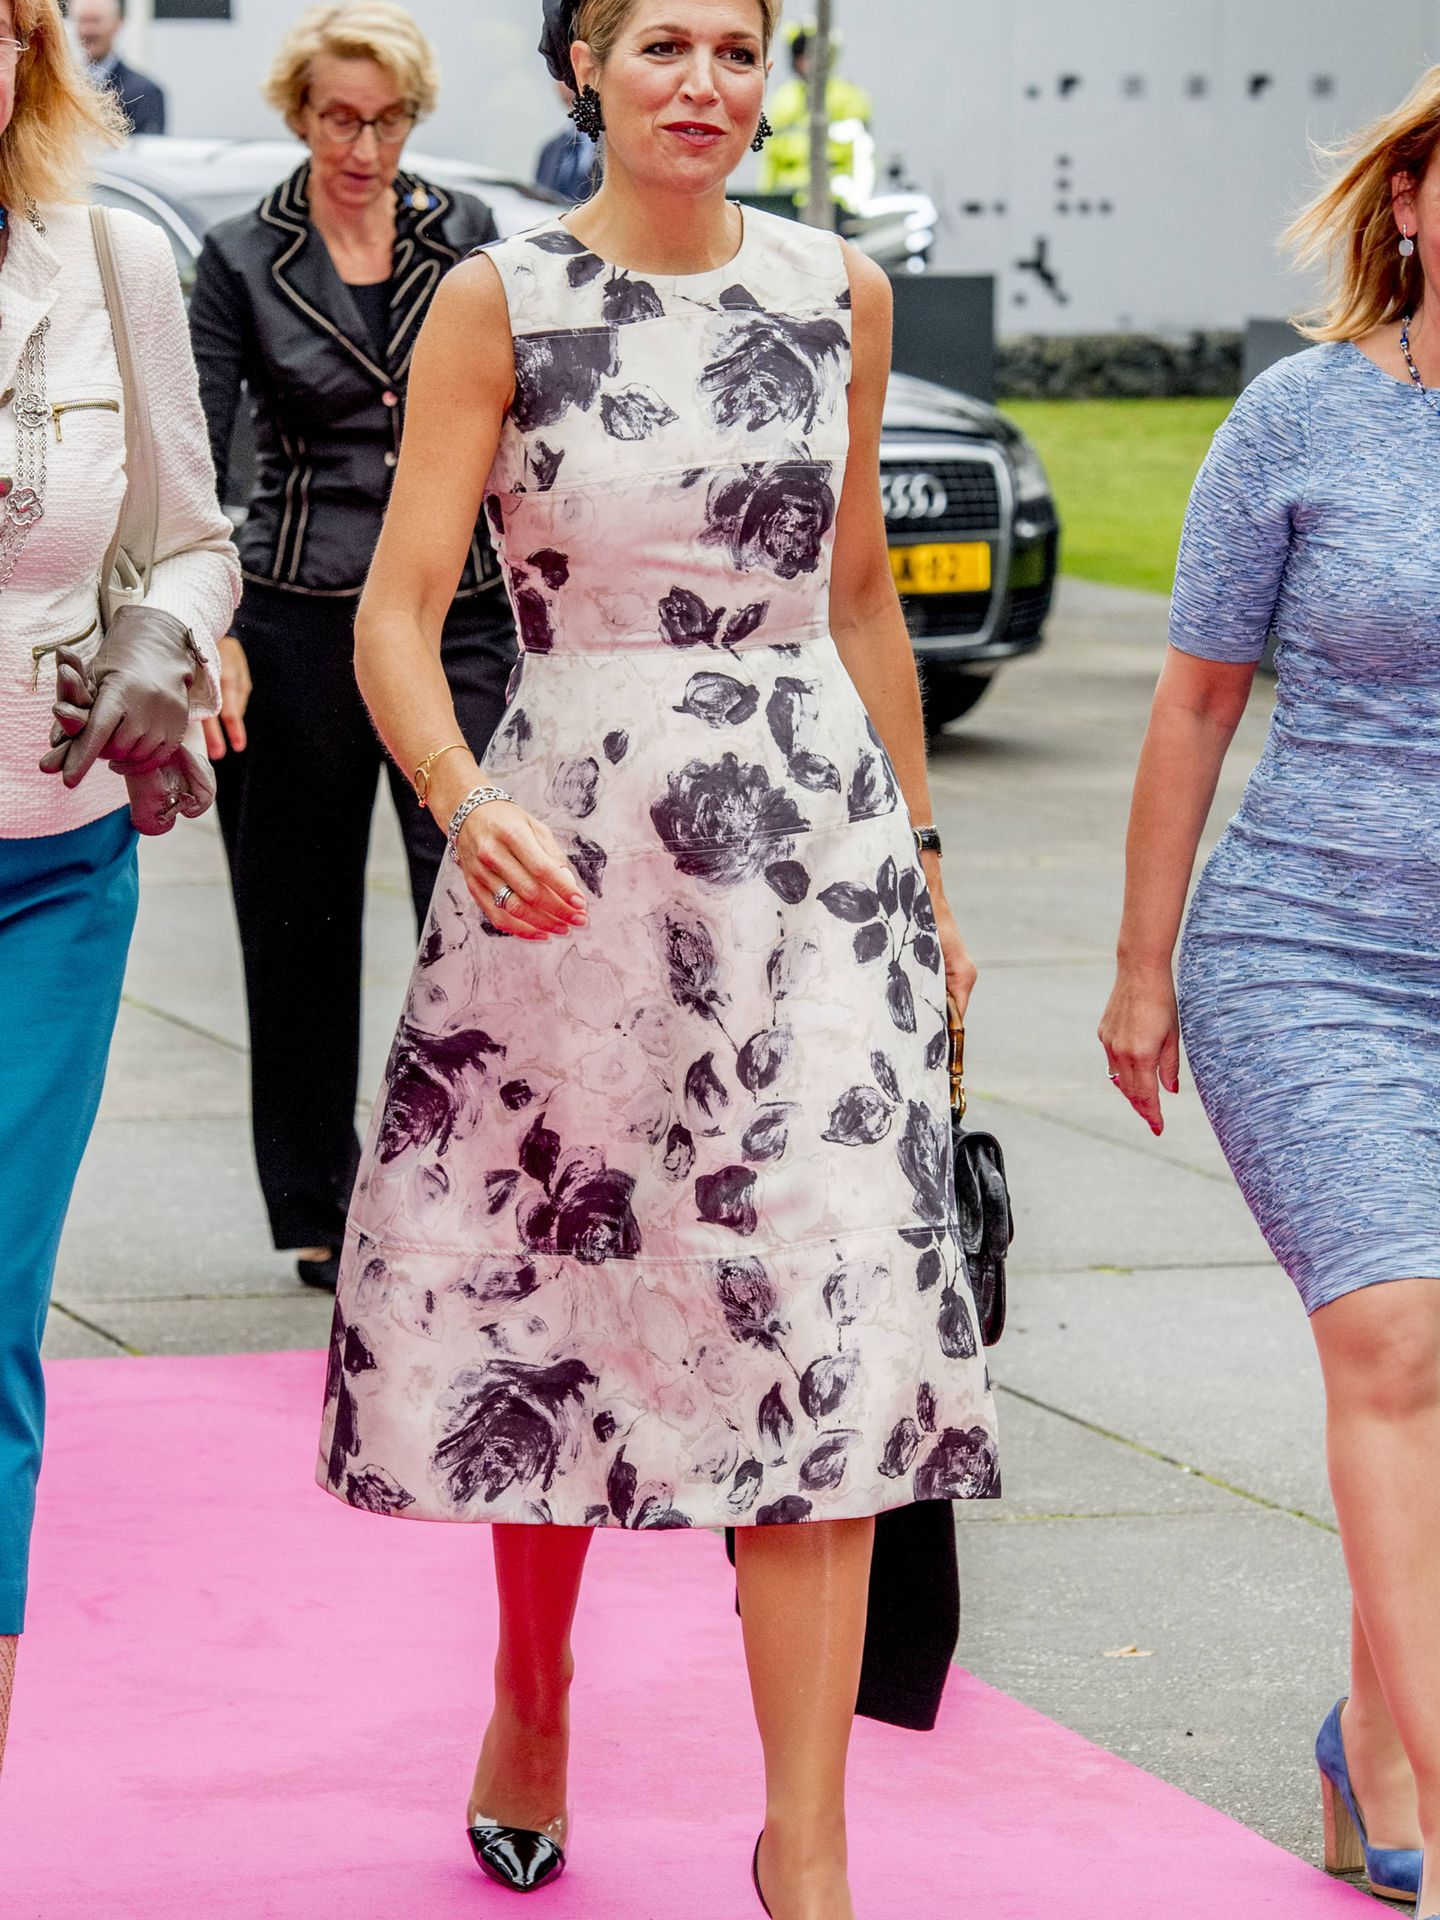 THE HAGUE - Queen Maxima is present at the congress World of Health Care in the Fokker Terminal in The Hague on Thursday 28 September. During this meeting, improving global health care is central.